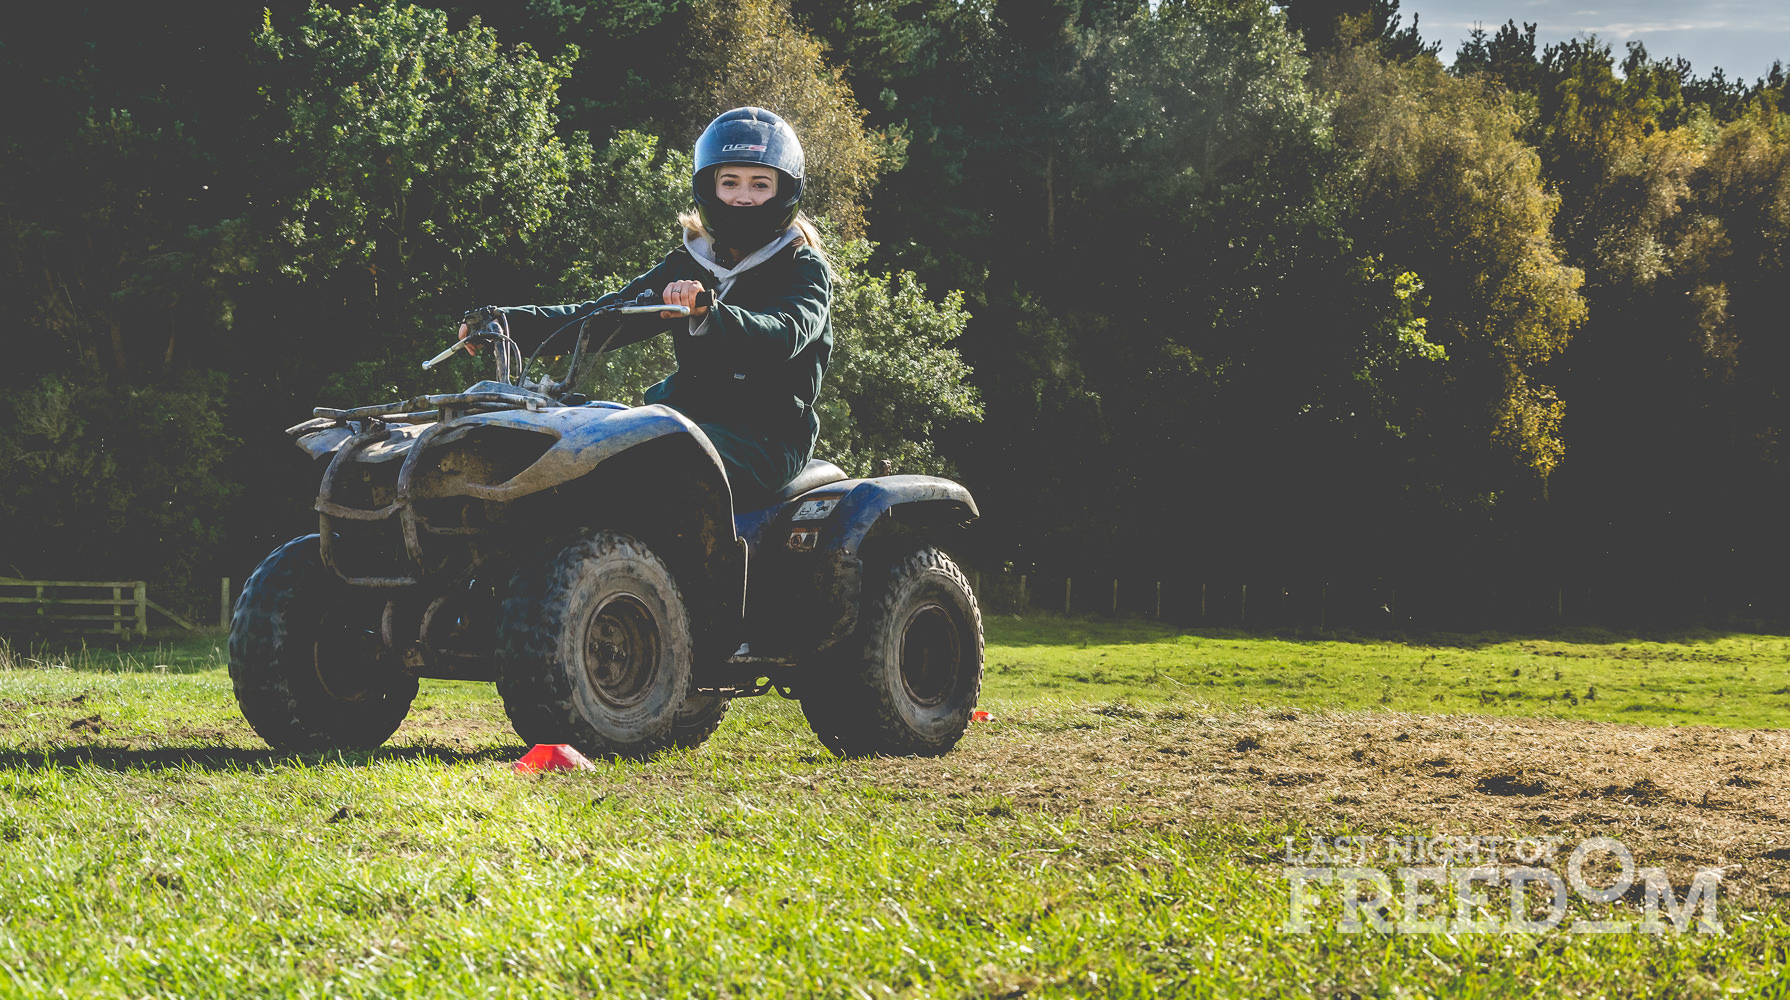 A girl sitting on a quad bike